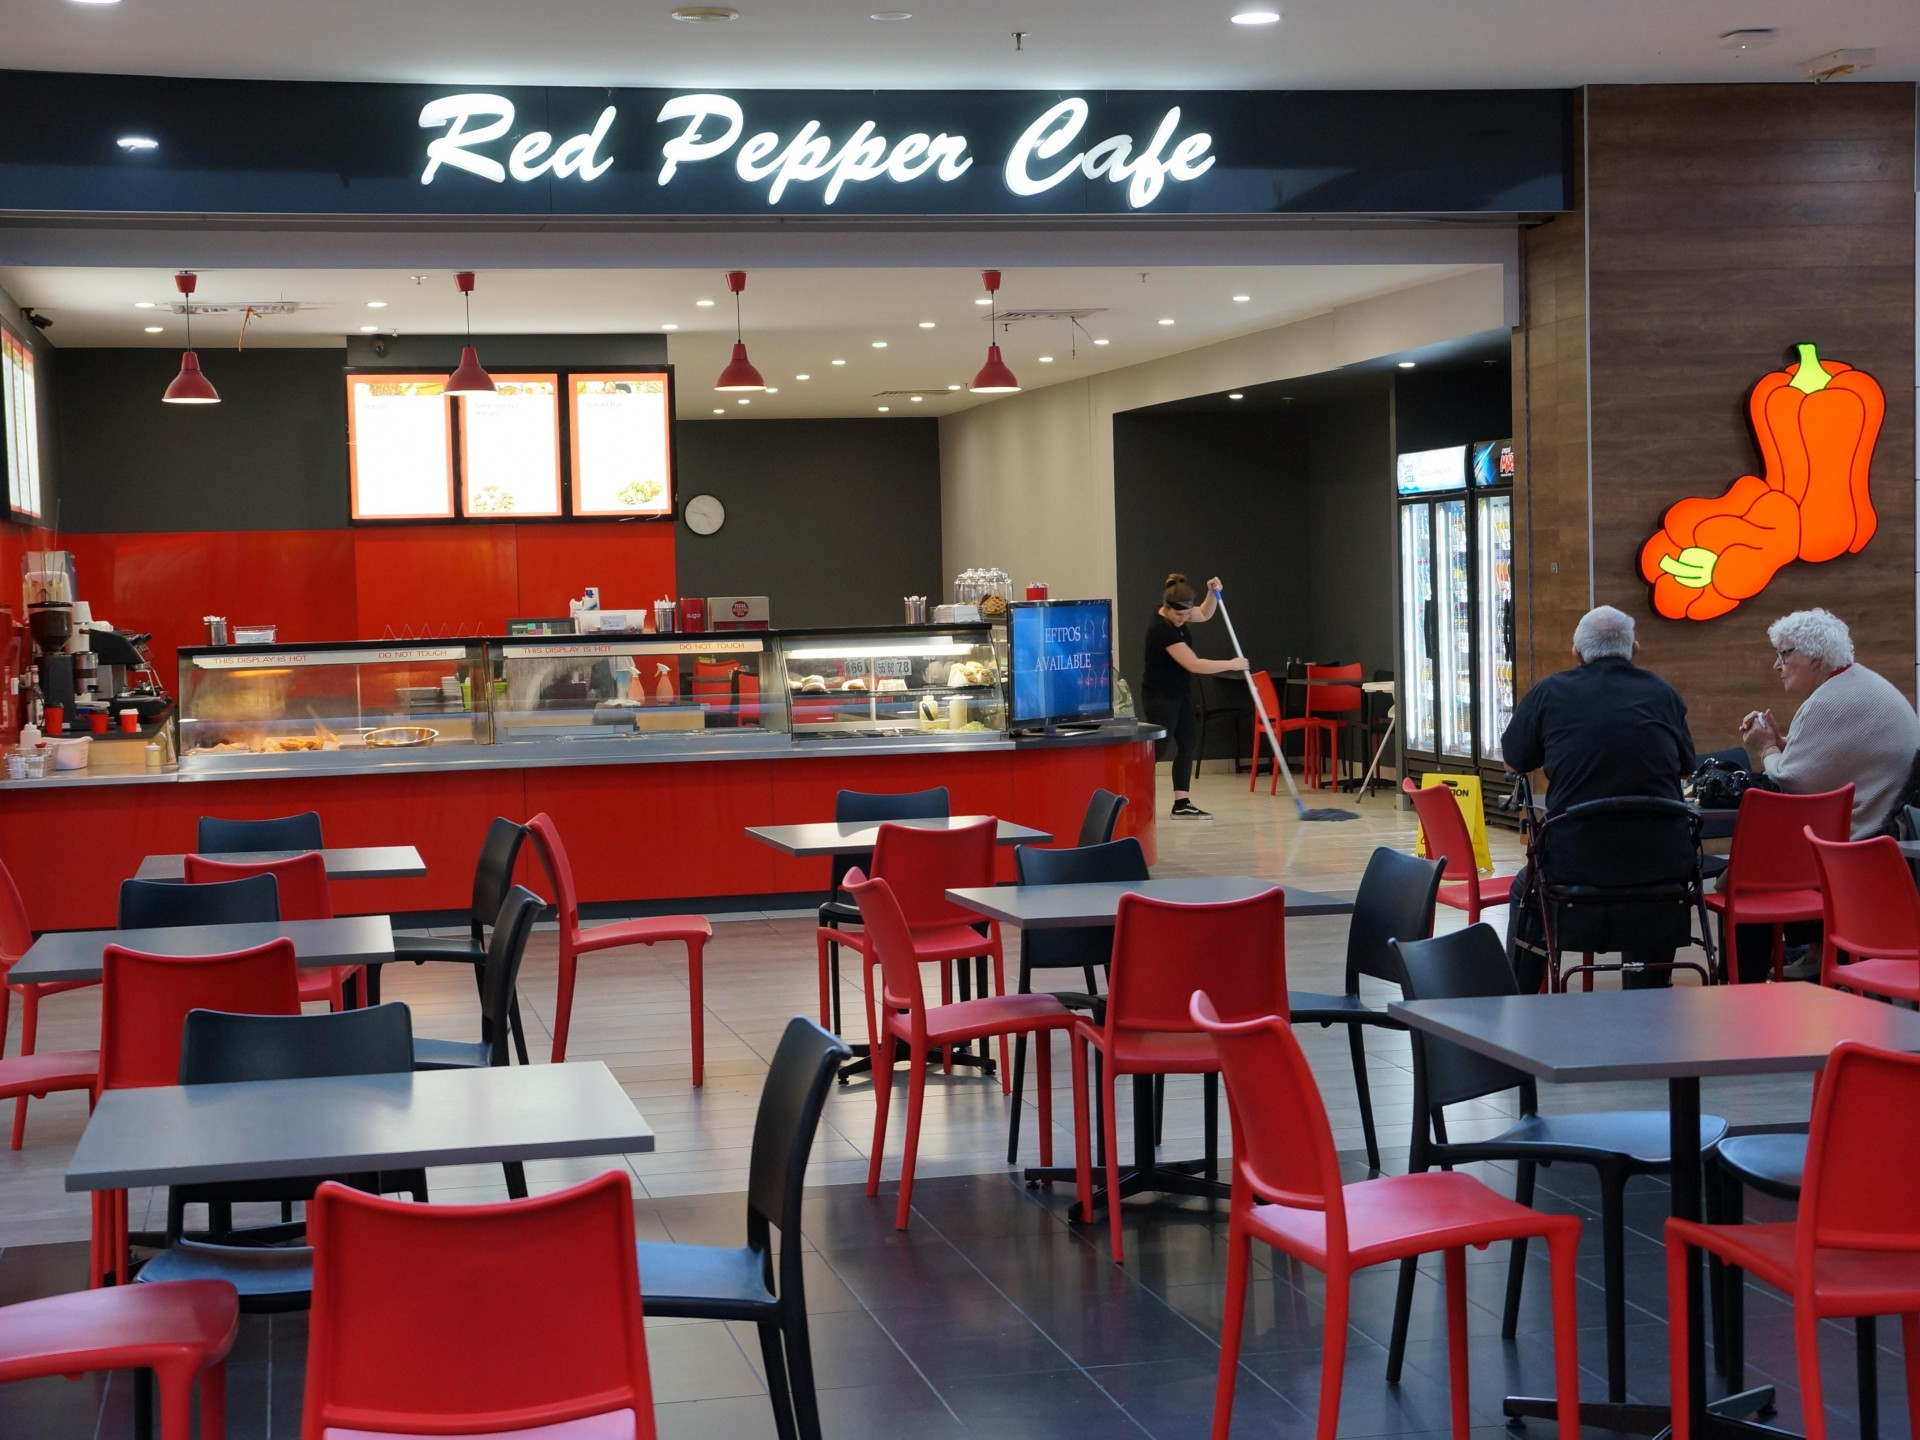 Red Pepper Cafe, Bendigo for Sale by Expressions of Interest